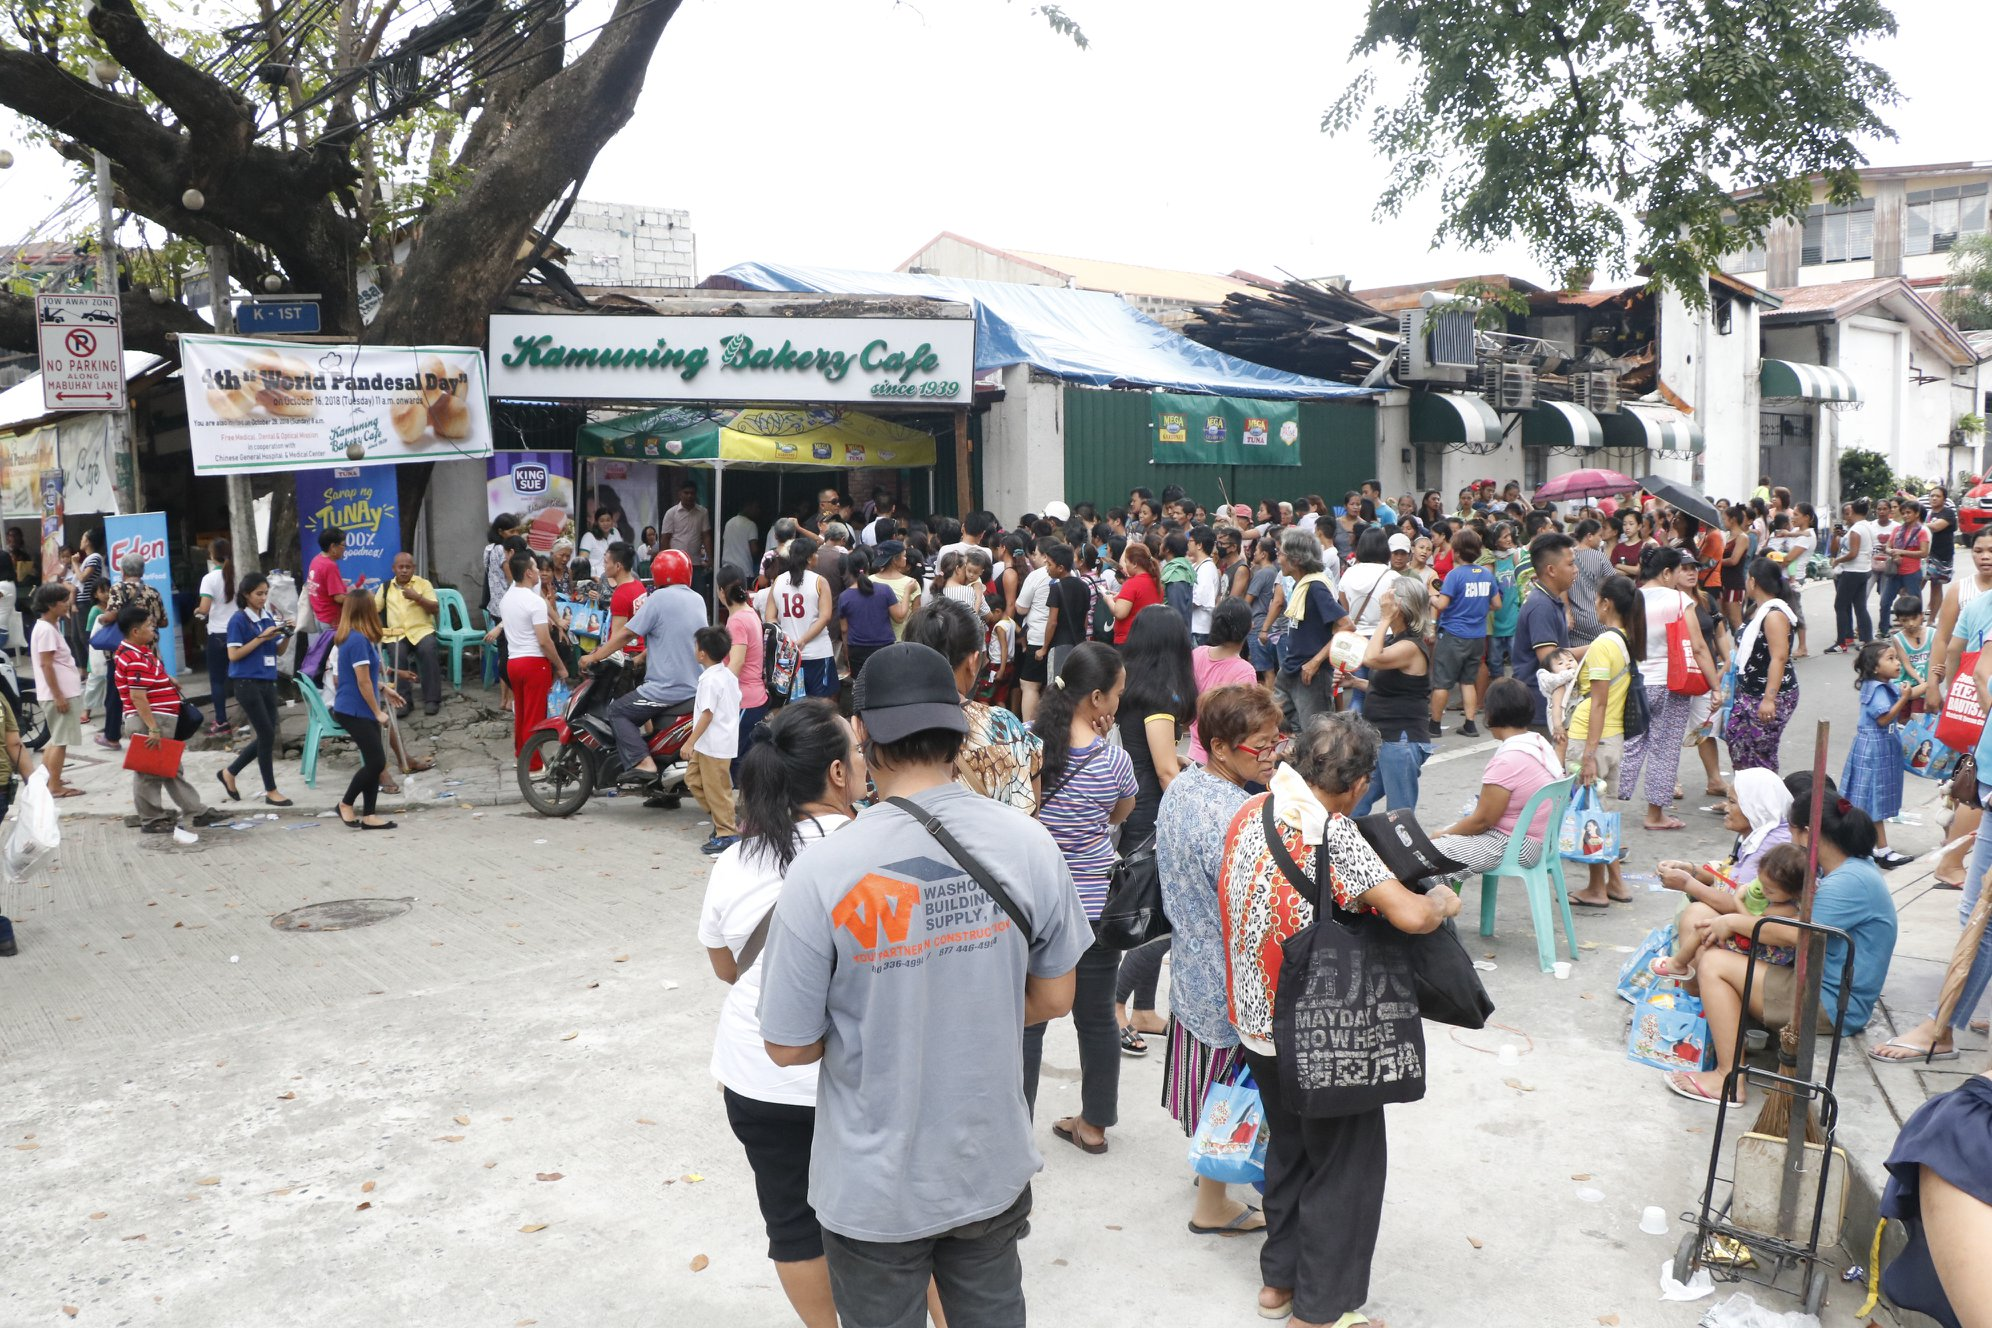 The crowd during the celebration of World Pandesal Day at Kamuning Bakery Cafe where 70,000 pan de sal were given away